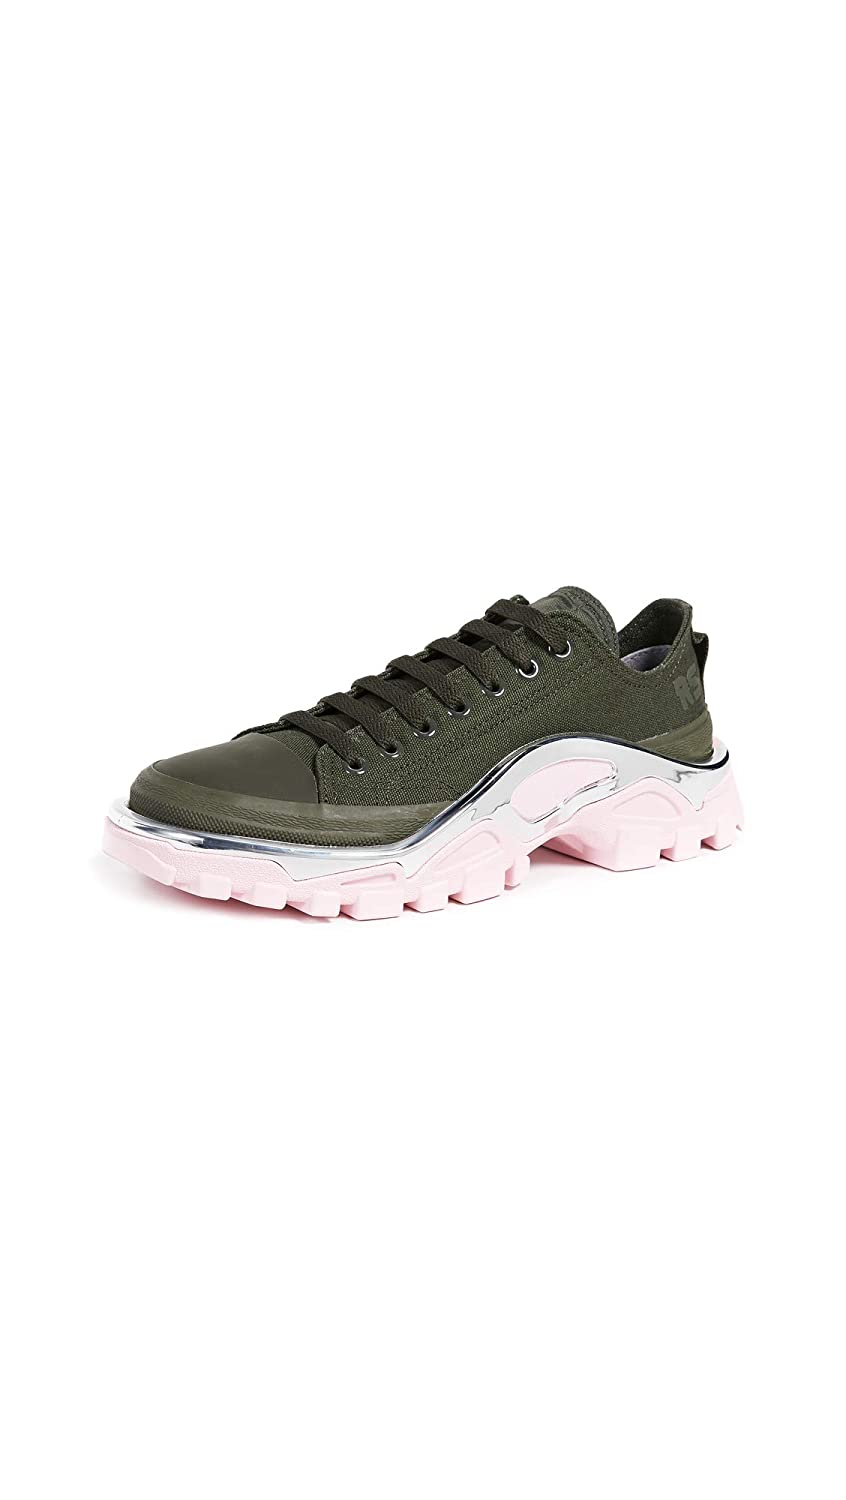 check out 830bb 26f29 Amazon.com  adidas Womens RAF Simons Detroit Runner Sneakers  Fashion  Sneakers